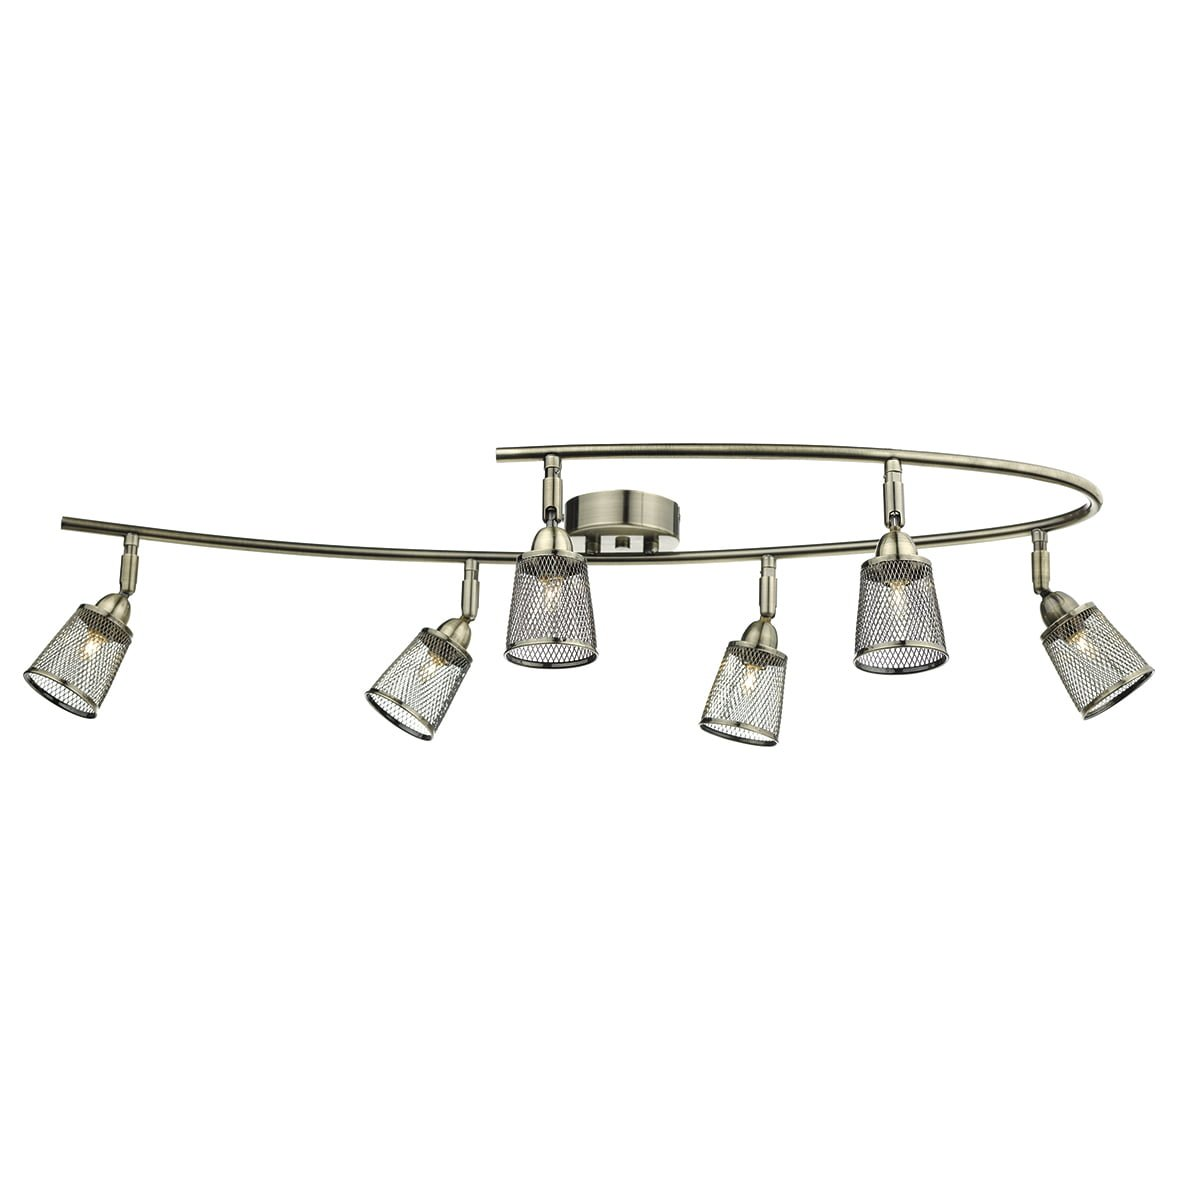 Dar LOW0675 Lowell 6 Light Semi Flush Spot Bar in Antique Brass